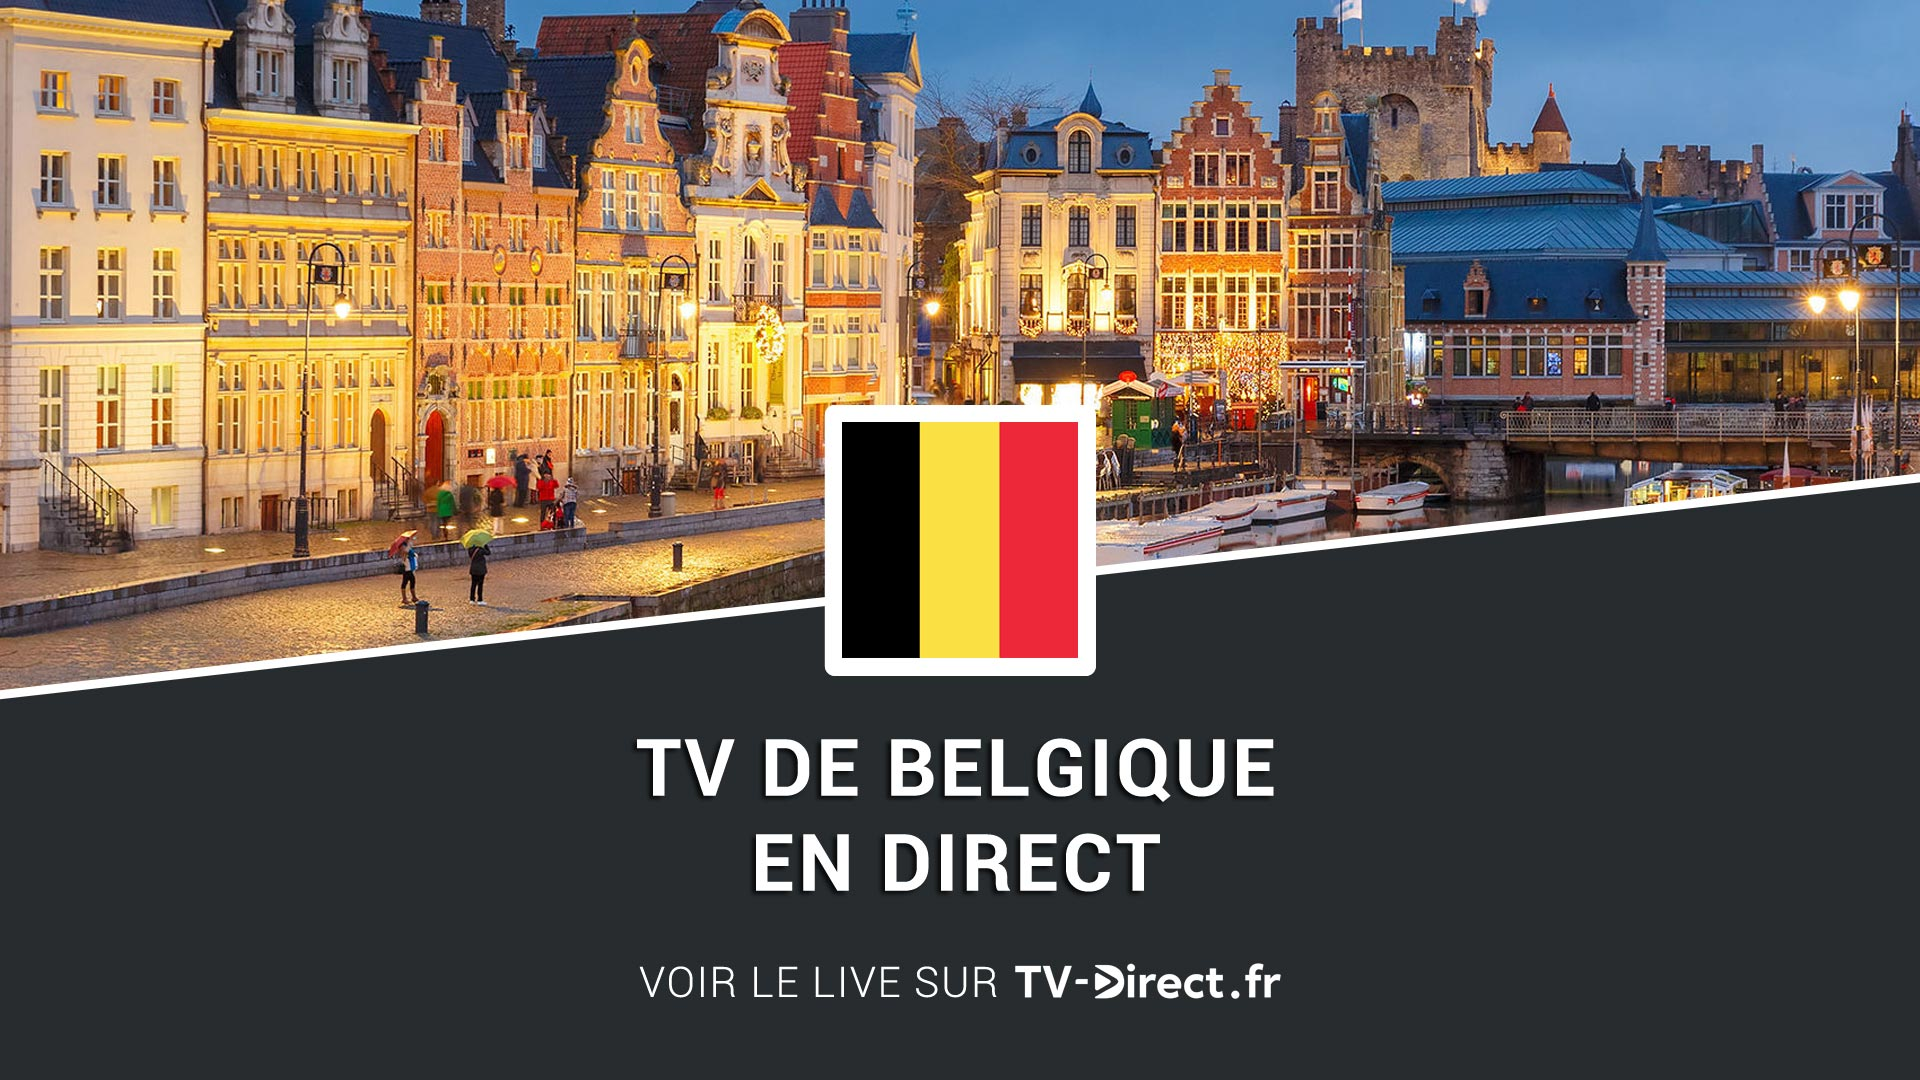 belgique tv en direct sur internet tv belge en direct. Black Bedroom Furniture Sets. Home Design Ideas